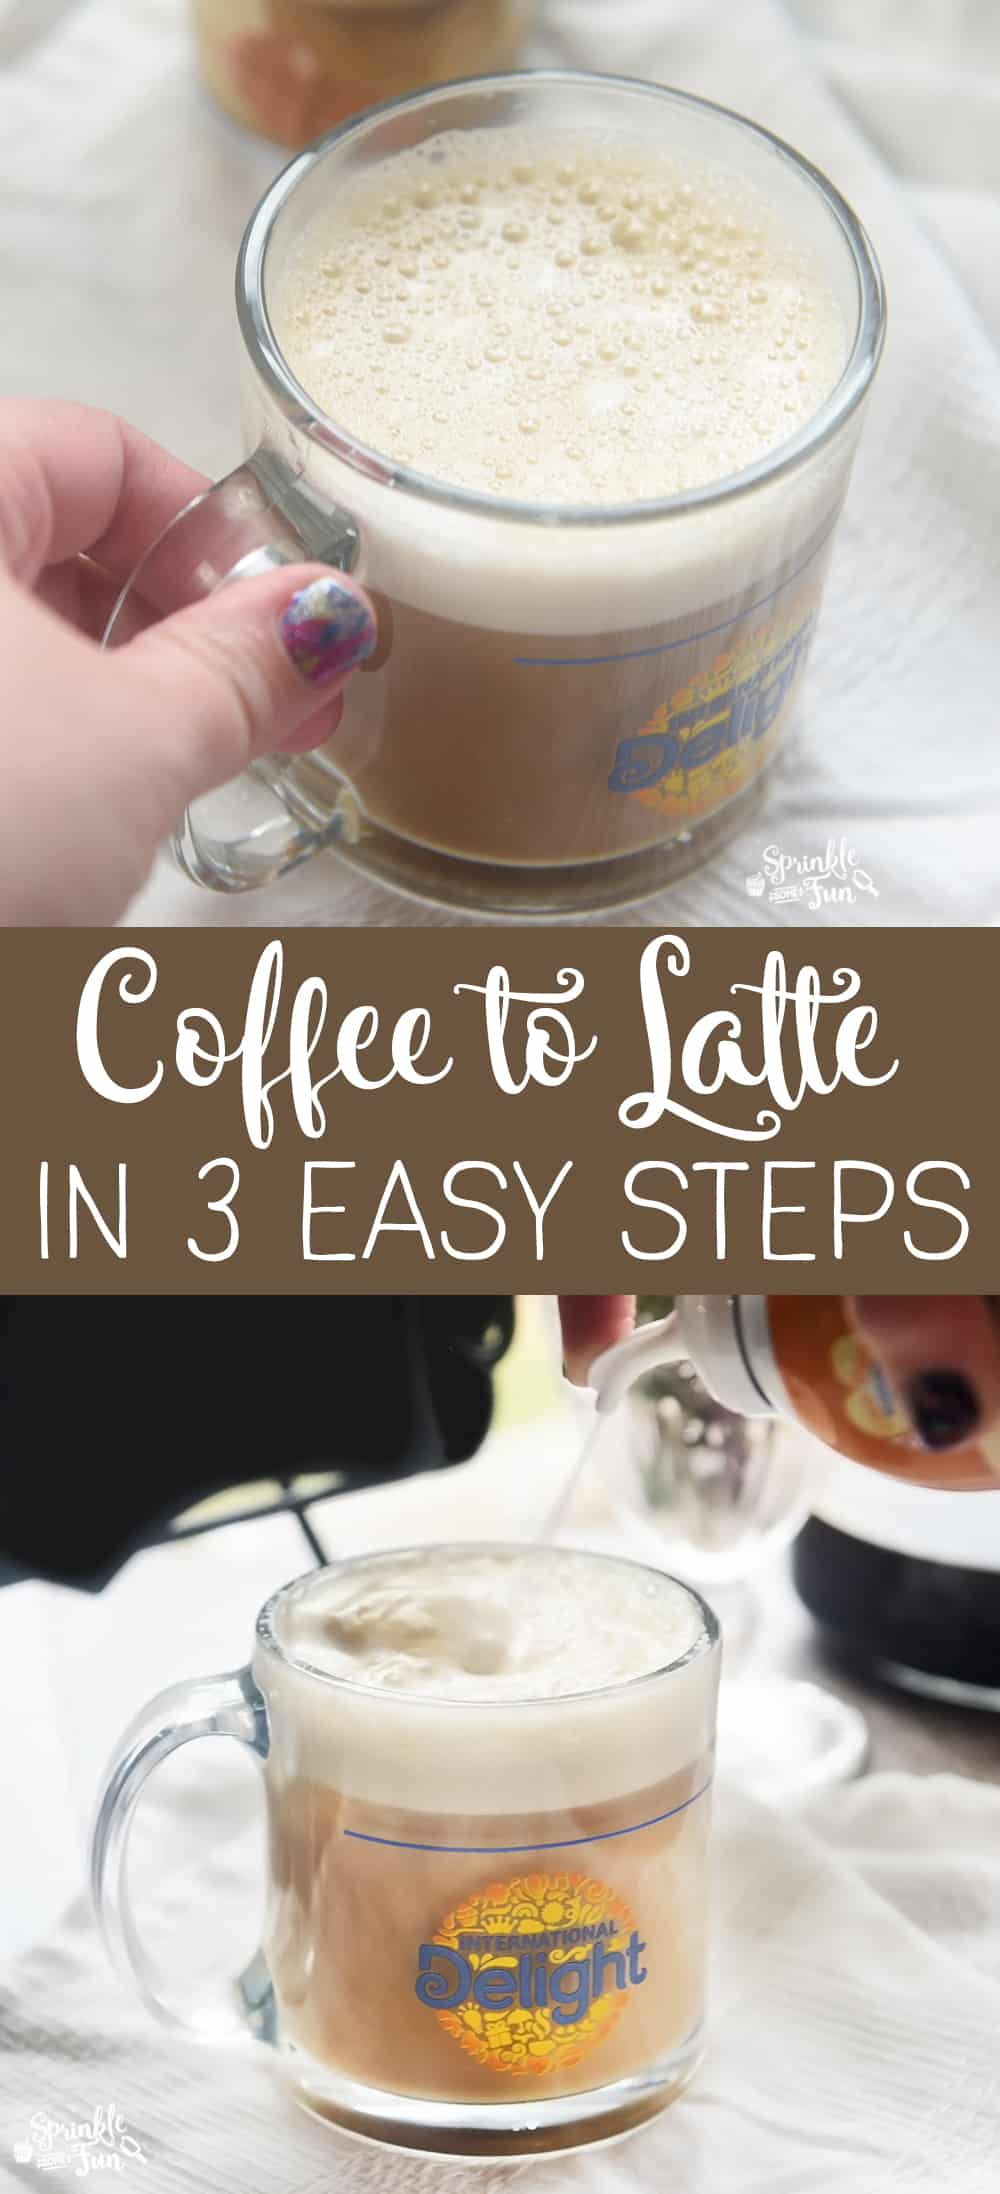 Coffee to Latte in 3 Easy Steps!   International Delight® One Touch Latte™ for a latte from home that tastes delicious!